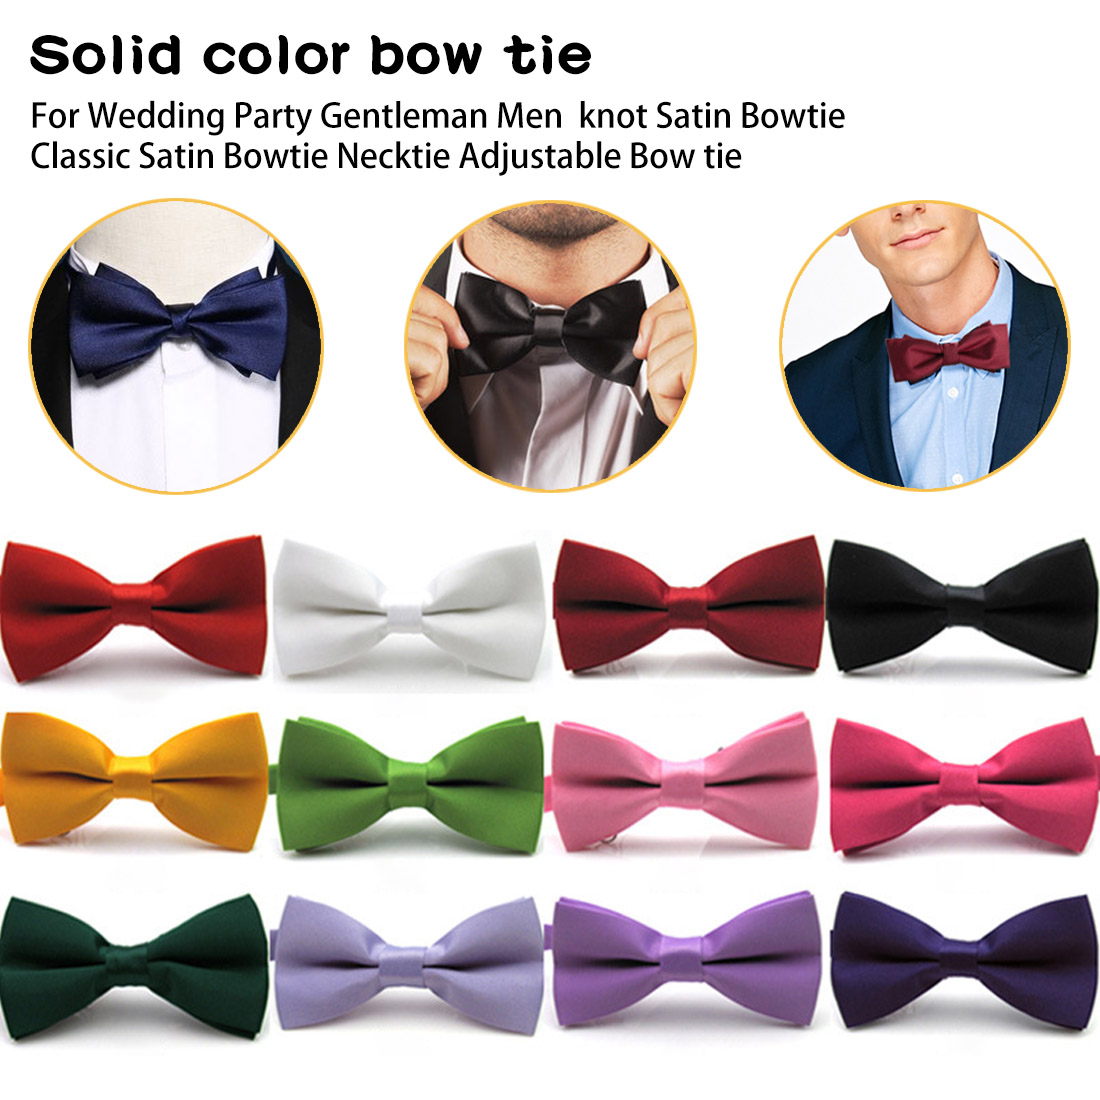 Gentleman Men Classic Satin Bowtie Necktie Pure Pocket Square For Wedding Party Easy Style Black Red Pink